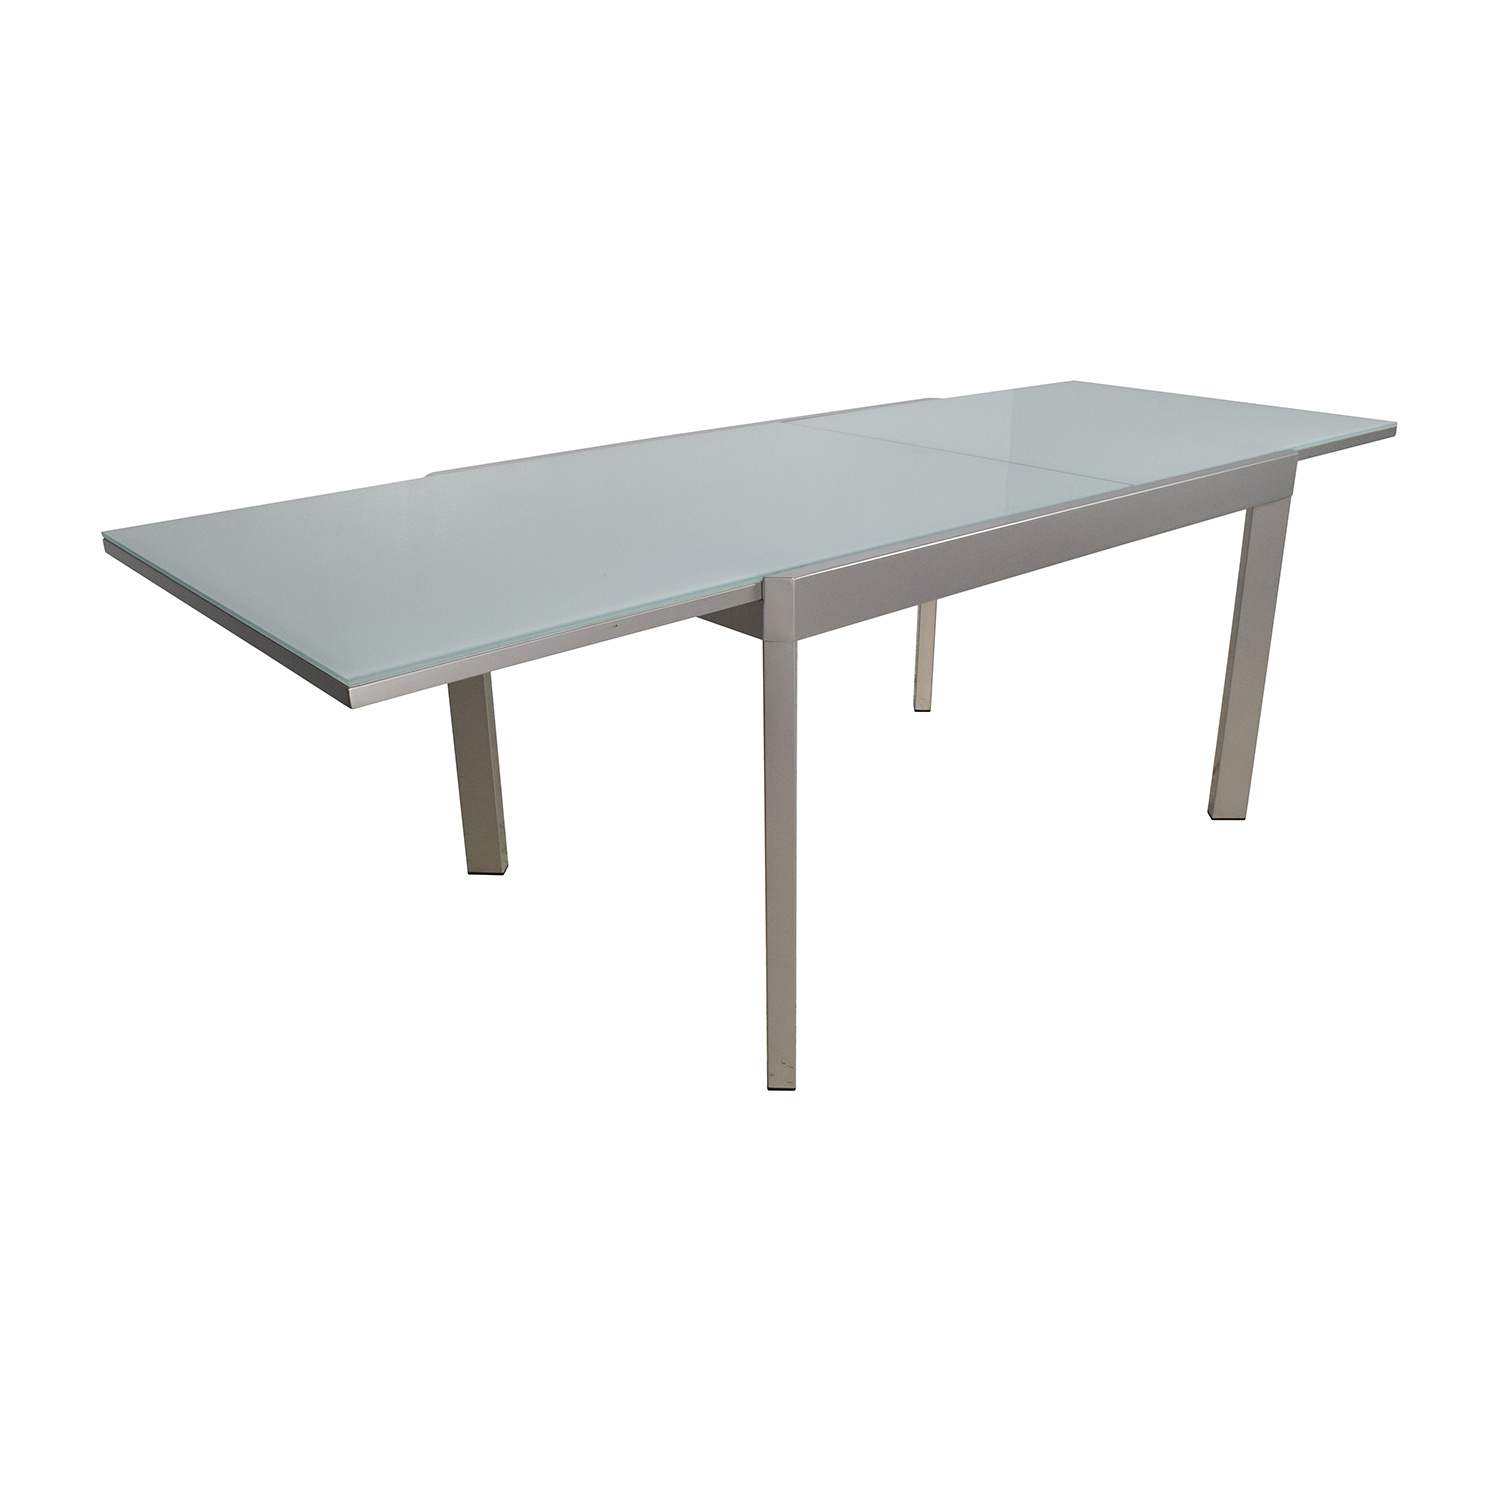 Buy Dining Table 86 Off Calligaris Calligaris Extendable Glass Dining